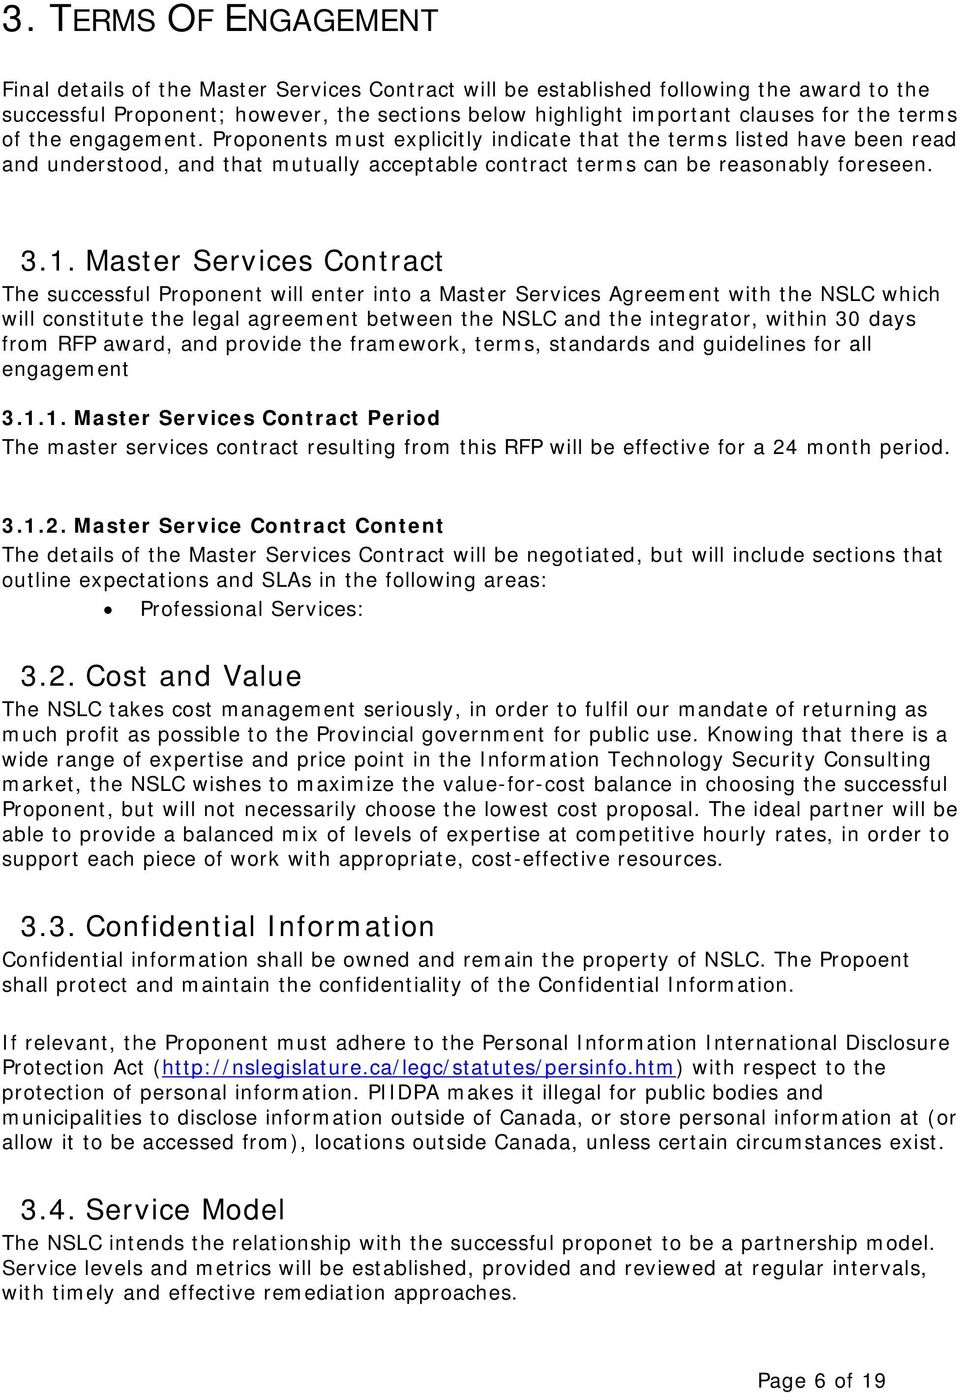 Master Services Contract The successful Proponent will enter into a Master Services Agreement with the NSLC which will constitute the legal agreement between the NSLC and the integrator, within 30